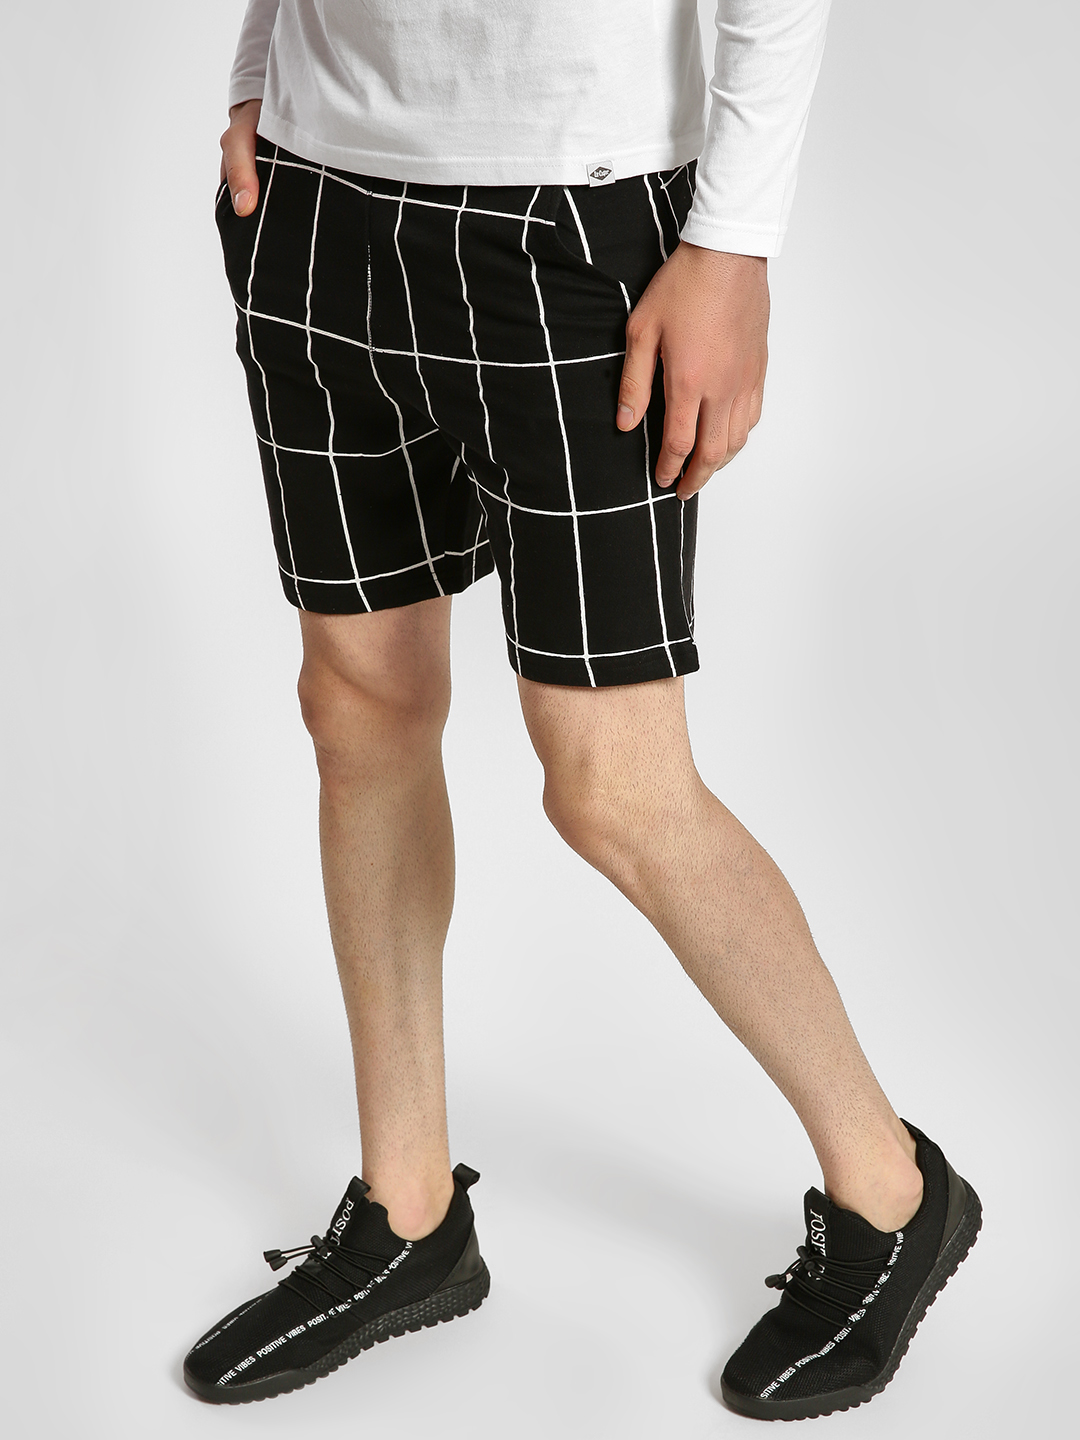 Garcon Black Windowpane Check Print Shorts 1